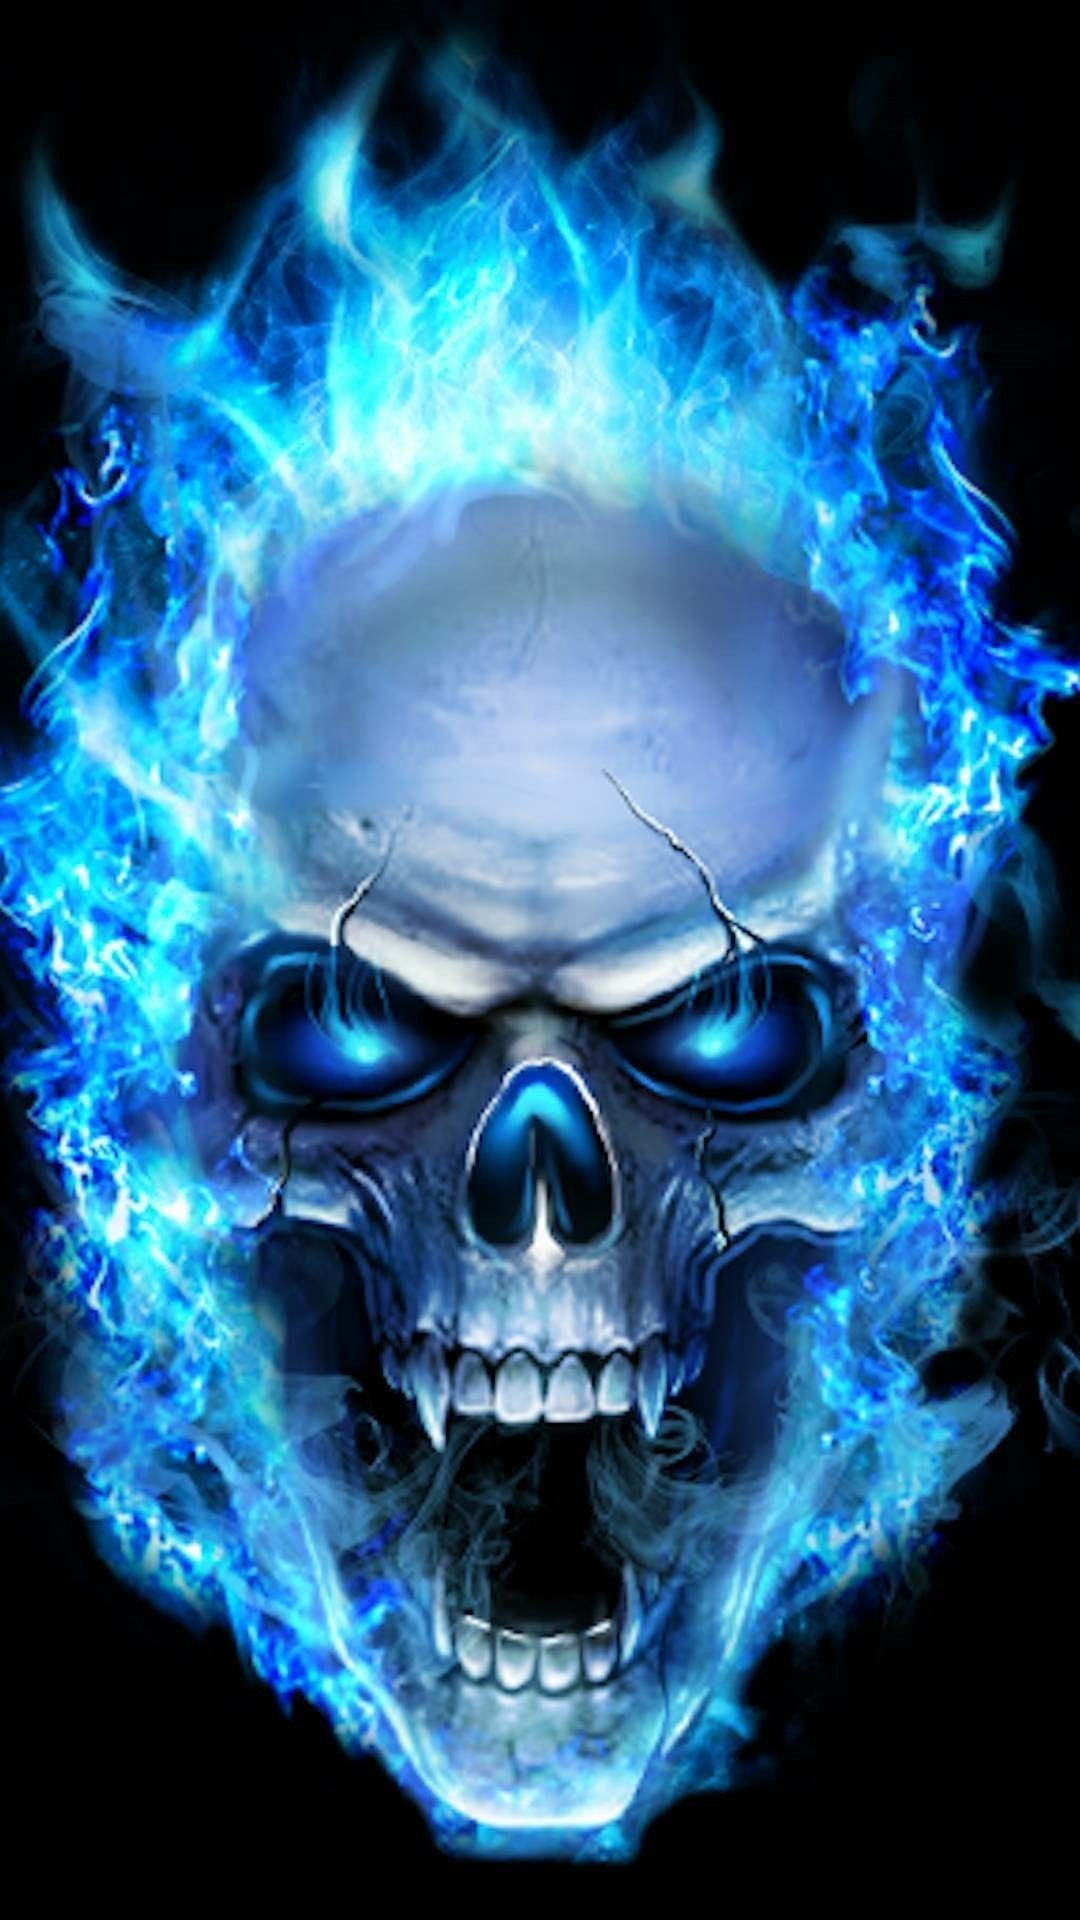 Skulls Live Wallpaper Android Apps on Google Play HD